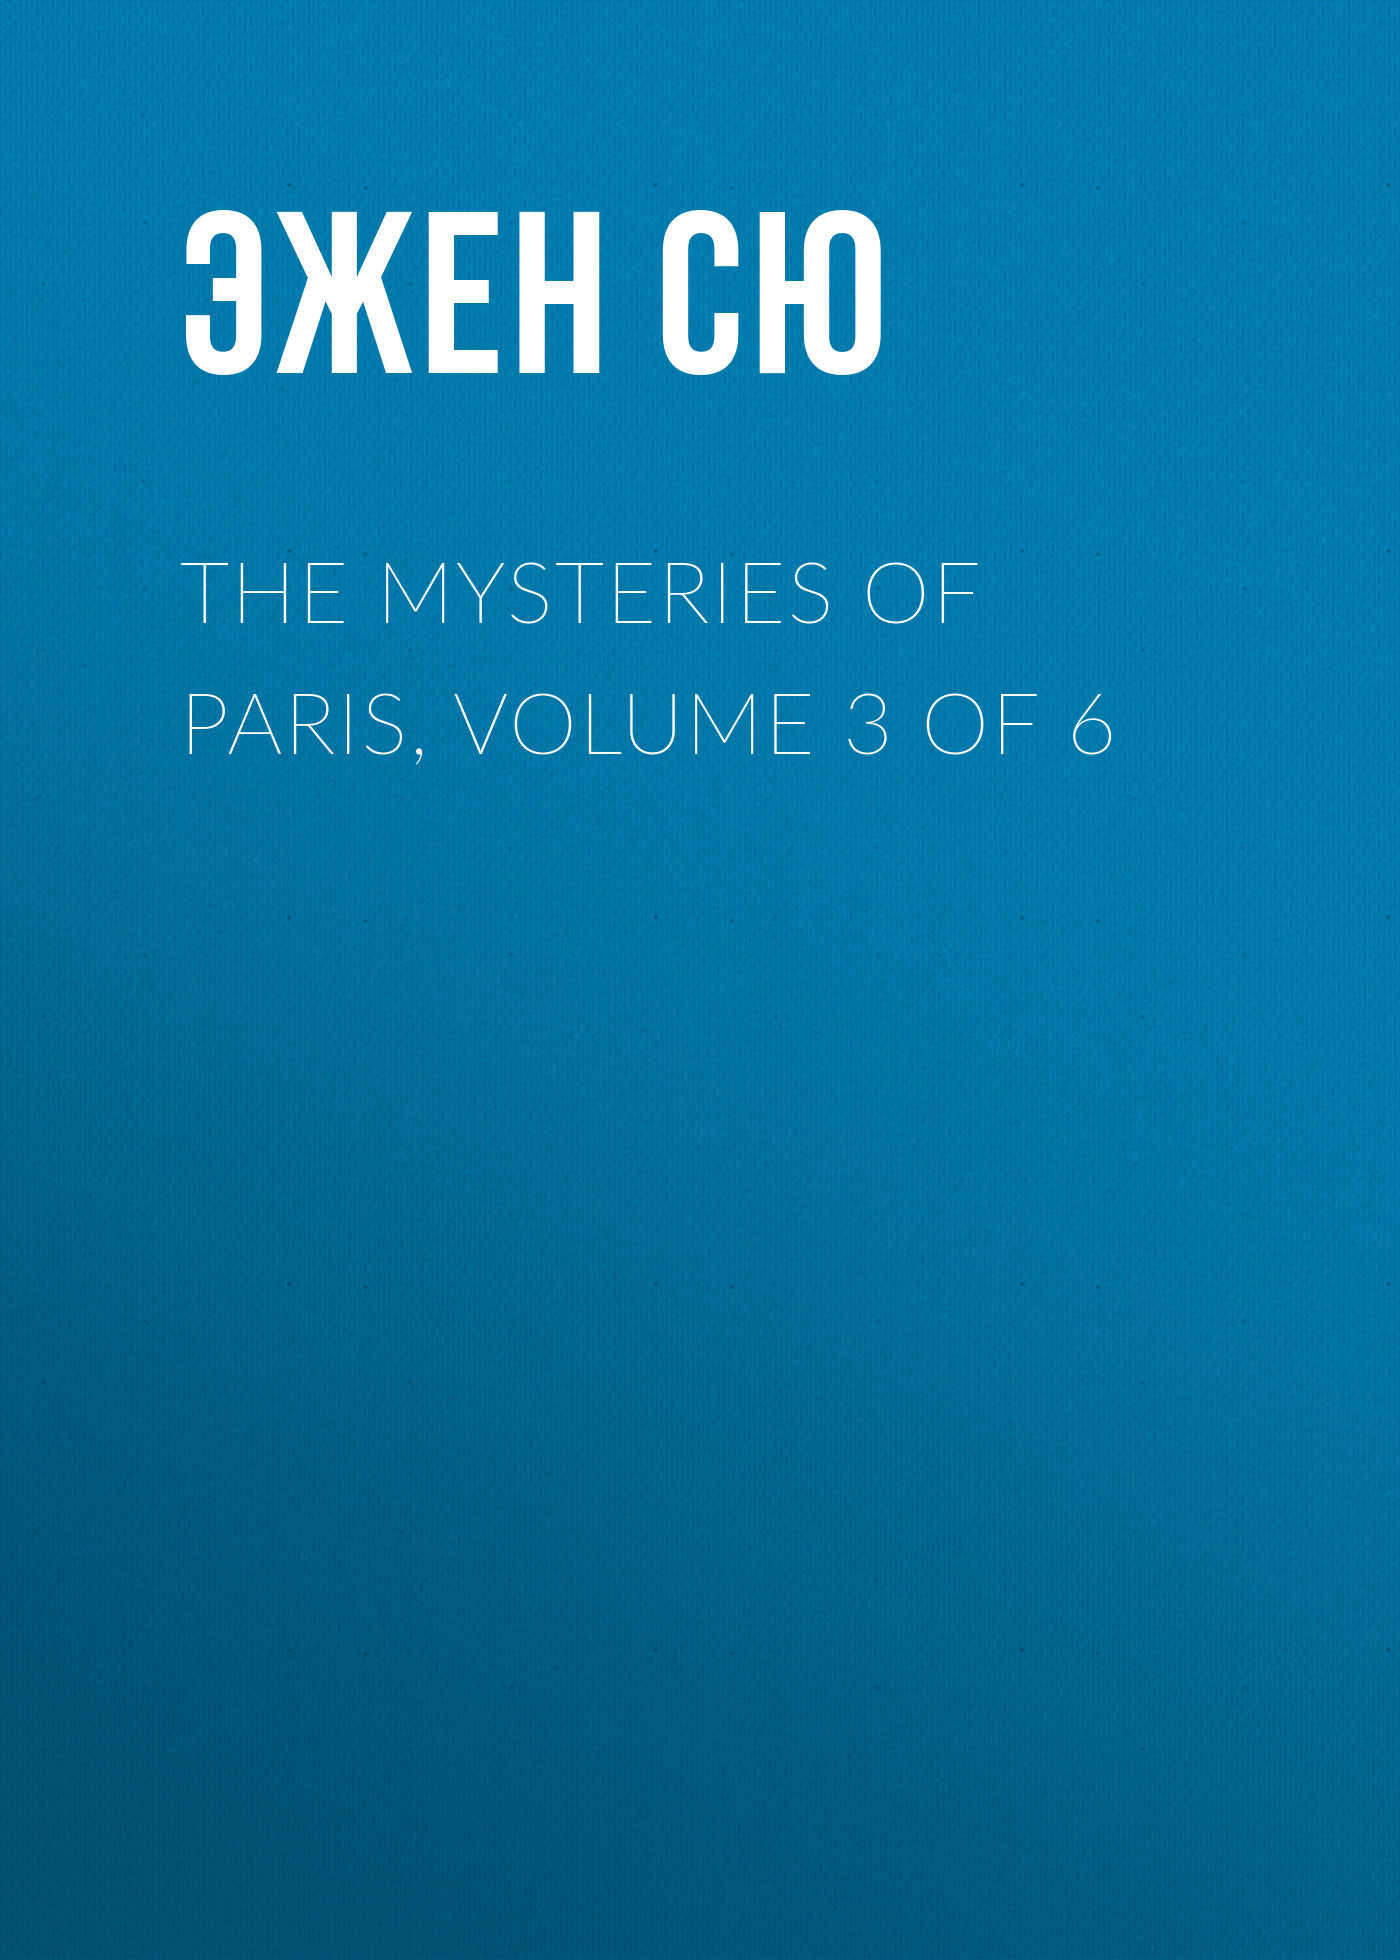 Эжен Сю The Mysteries of Paris, Volume 3 of 6 эжен сю the mysteries of paris volume 5 of 6